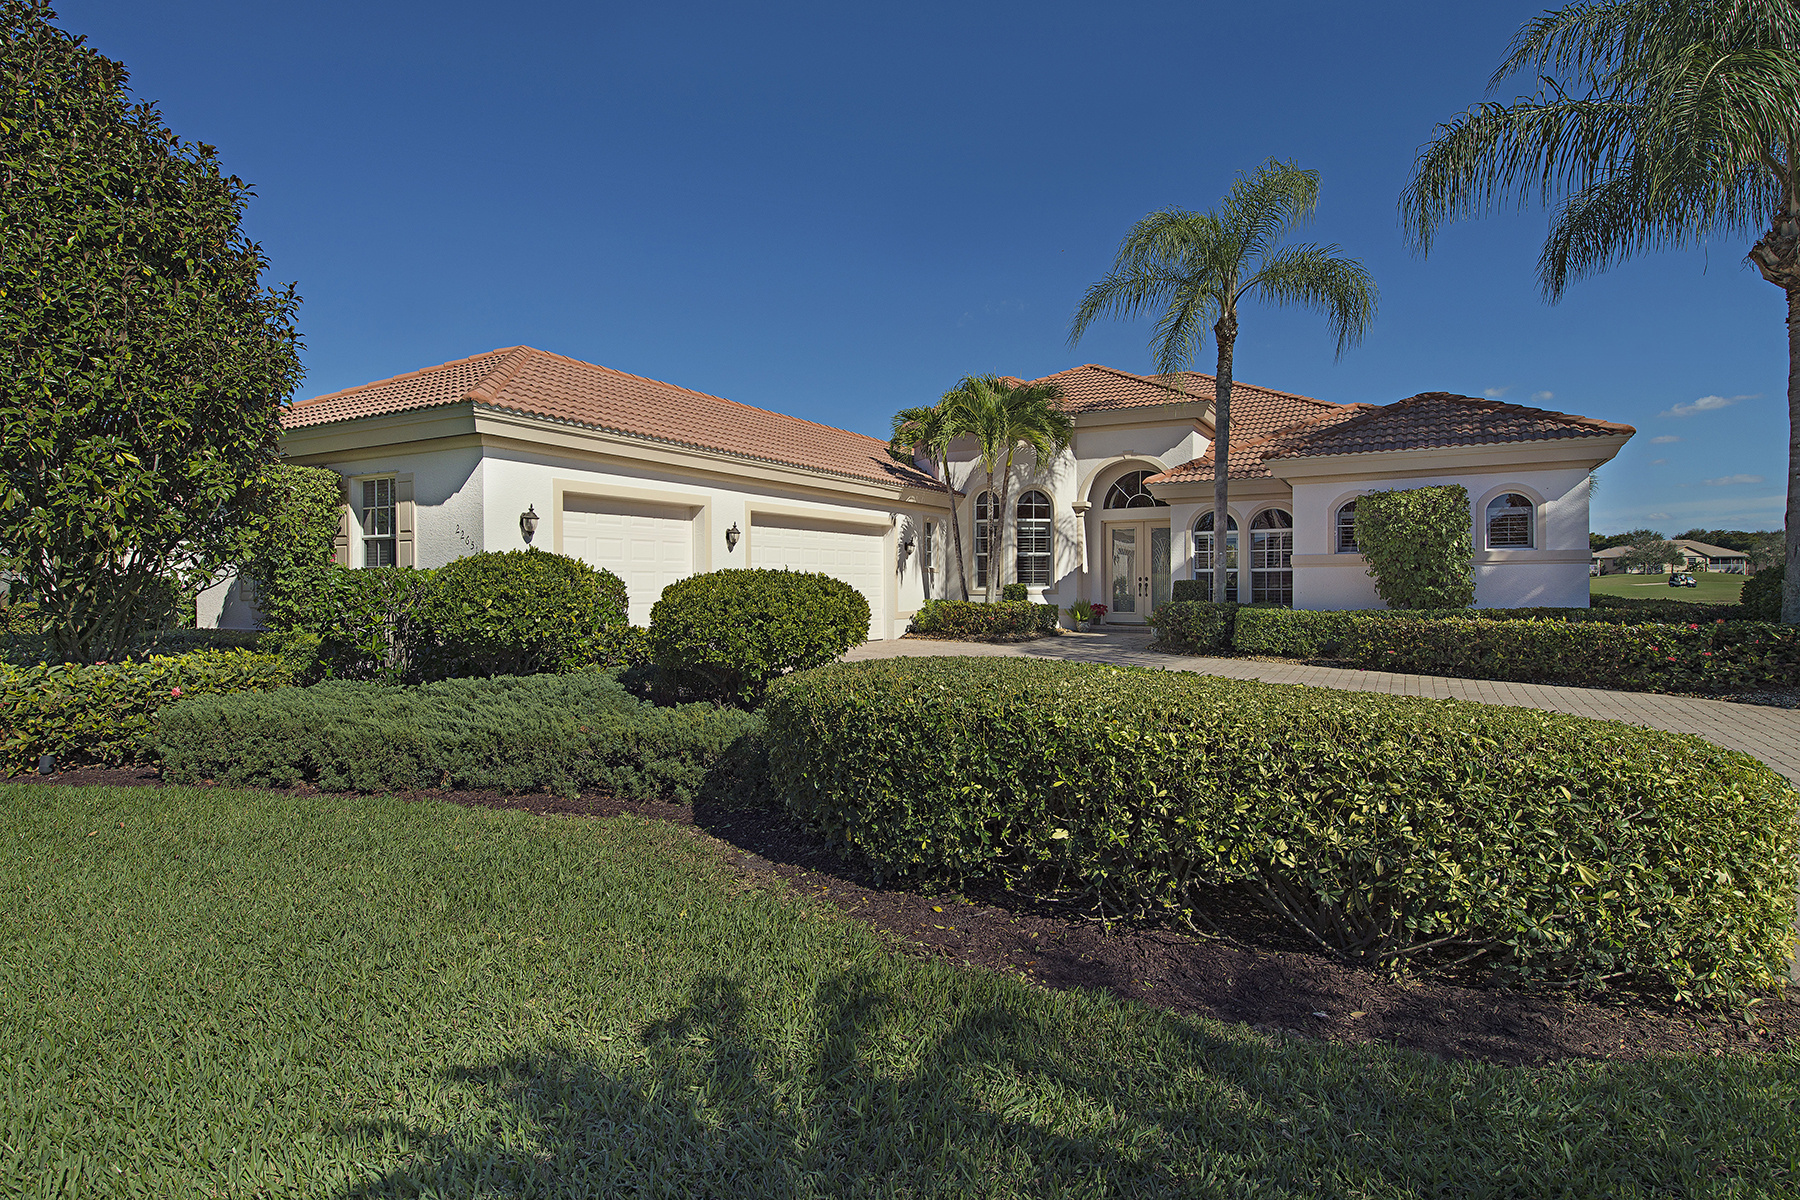 Villa per Vendita alle ore SHADOWWOOD -WOODMONT 22651 Fairlawn Ct Estero, Florida, 34135 Stati Uniti